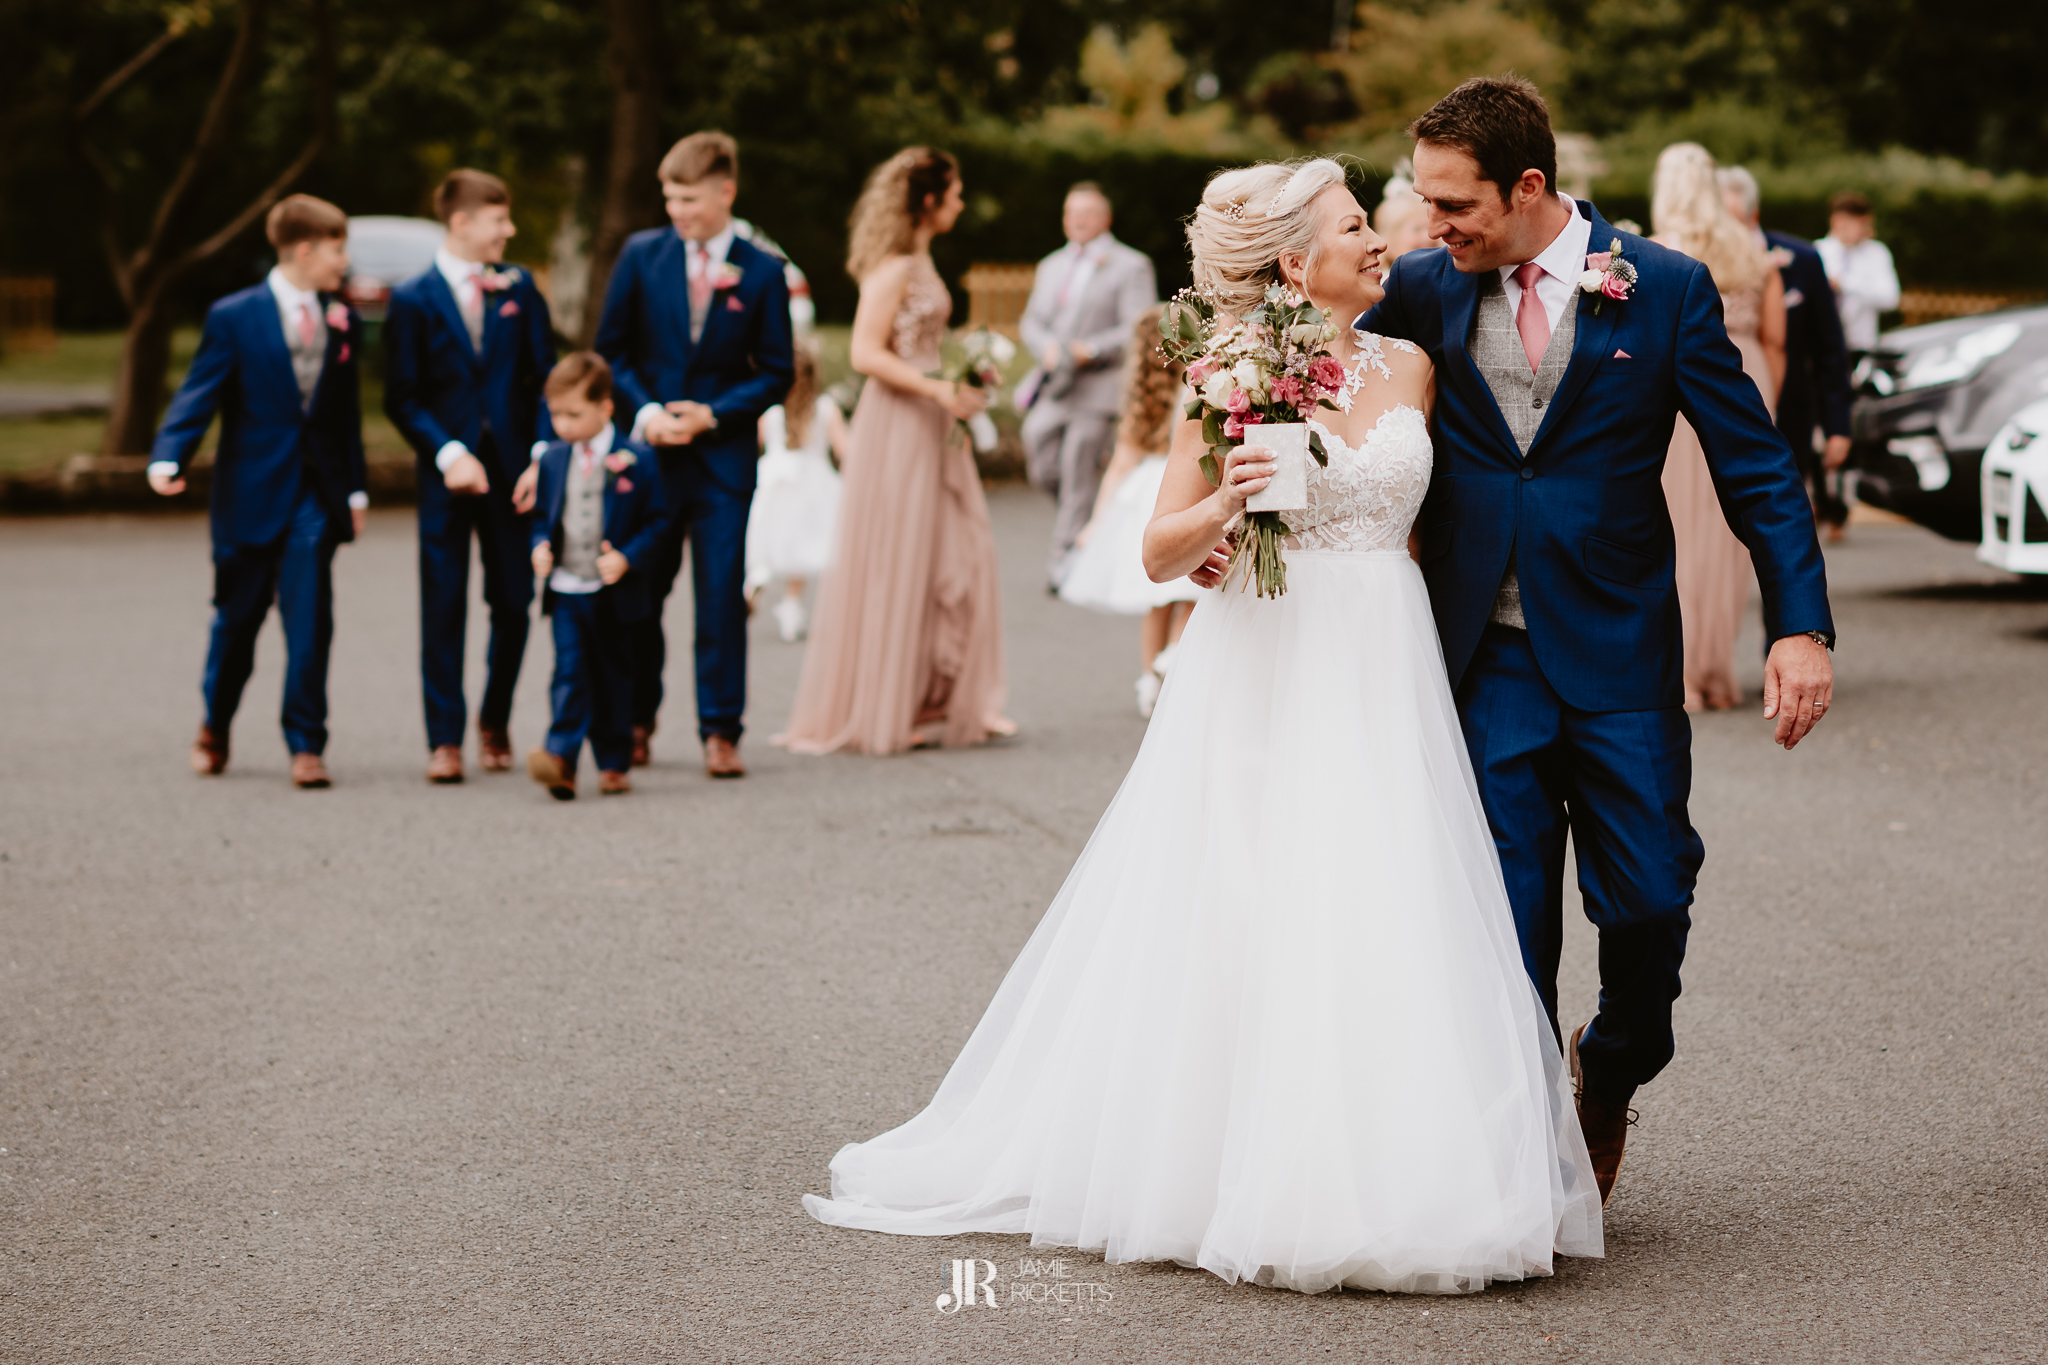 Wroxeter-Hotel-Wedding-Photography-In-Shropshire-By-Shropshire-Wedding-Photographer-Jamie-Ricketts-079.JPG